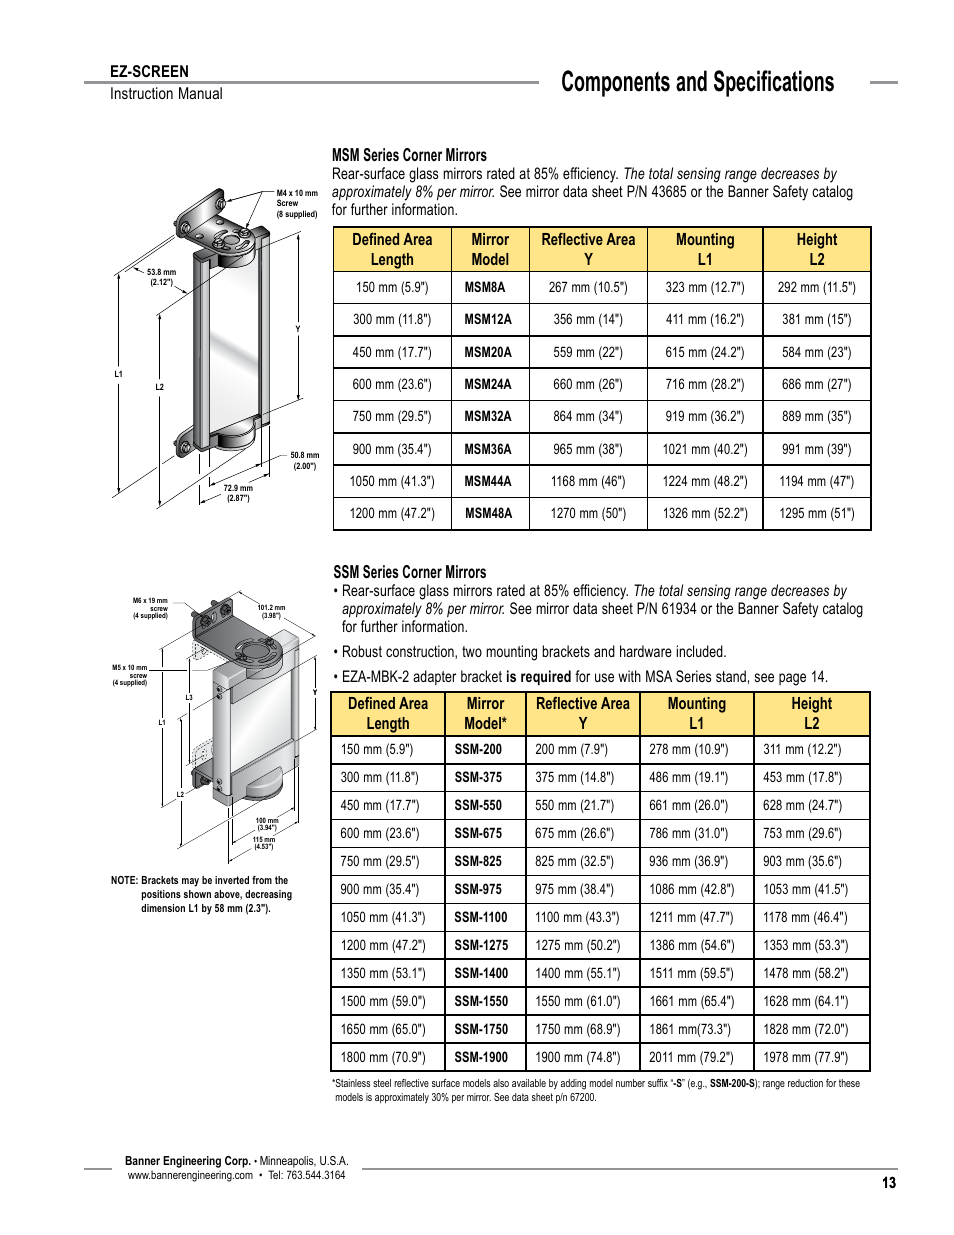 Overview Components And Specifications Msm Series Corner Mirrors